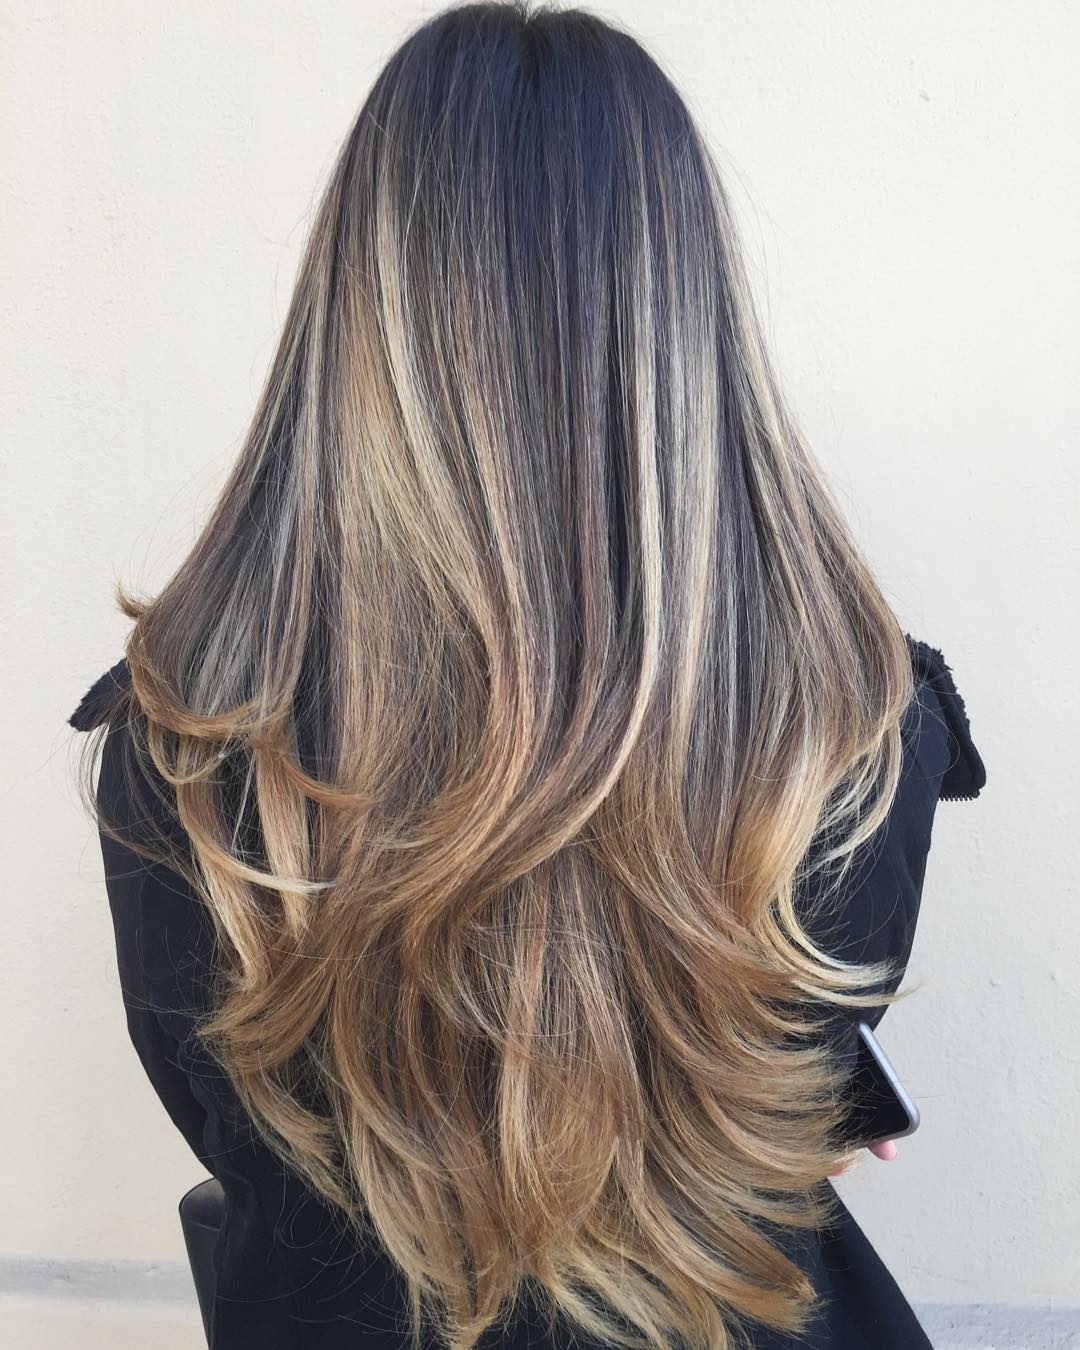 Long Layered High-Contrast Balayage Hair